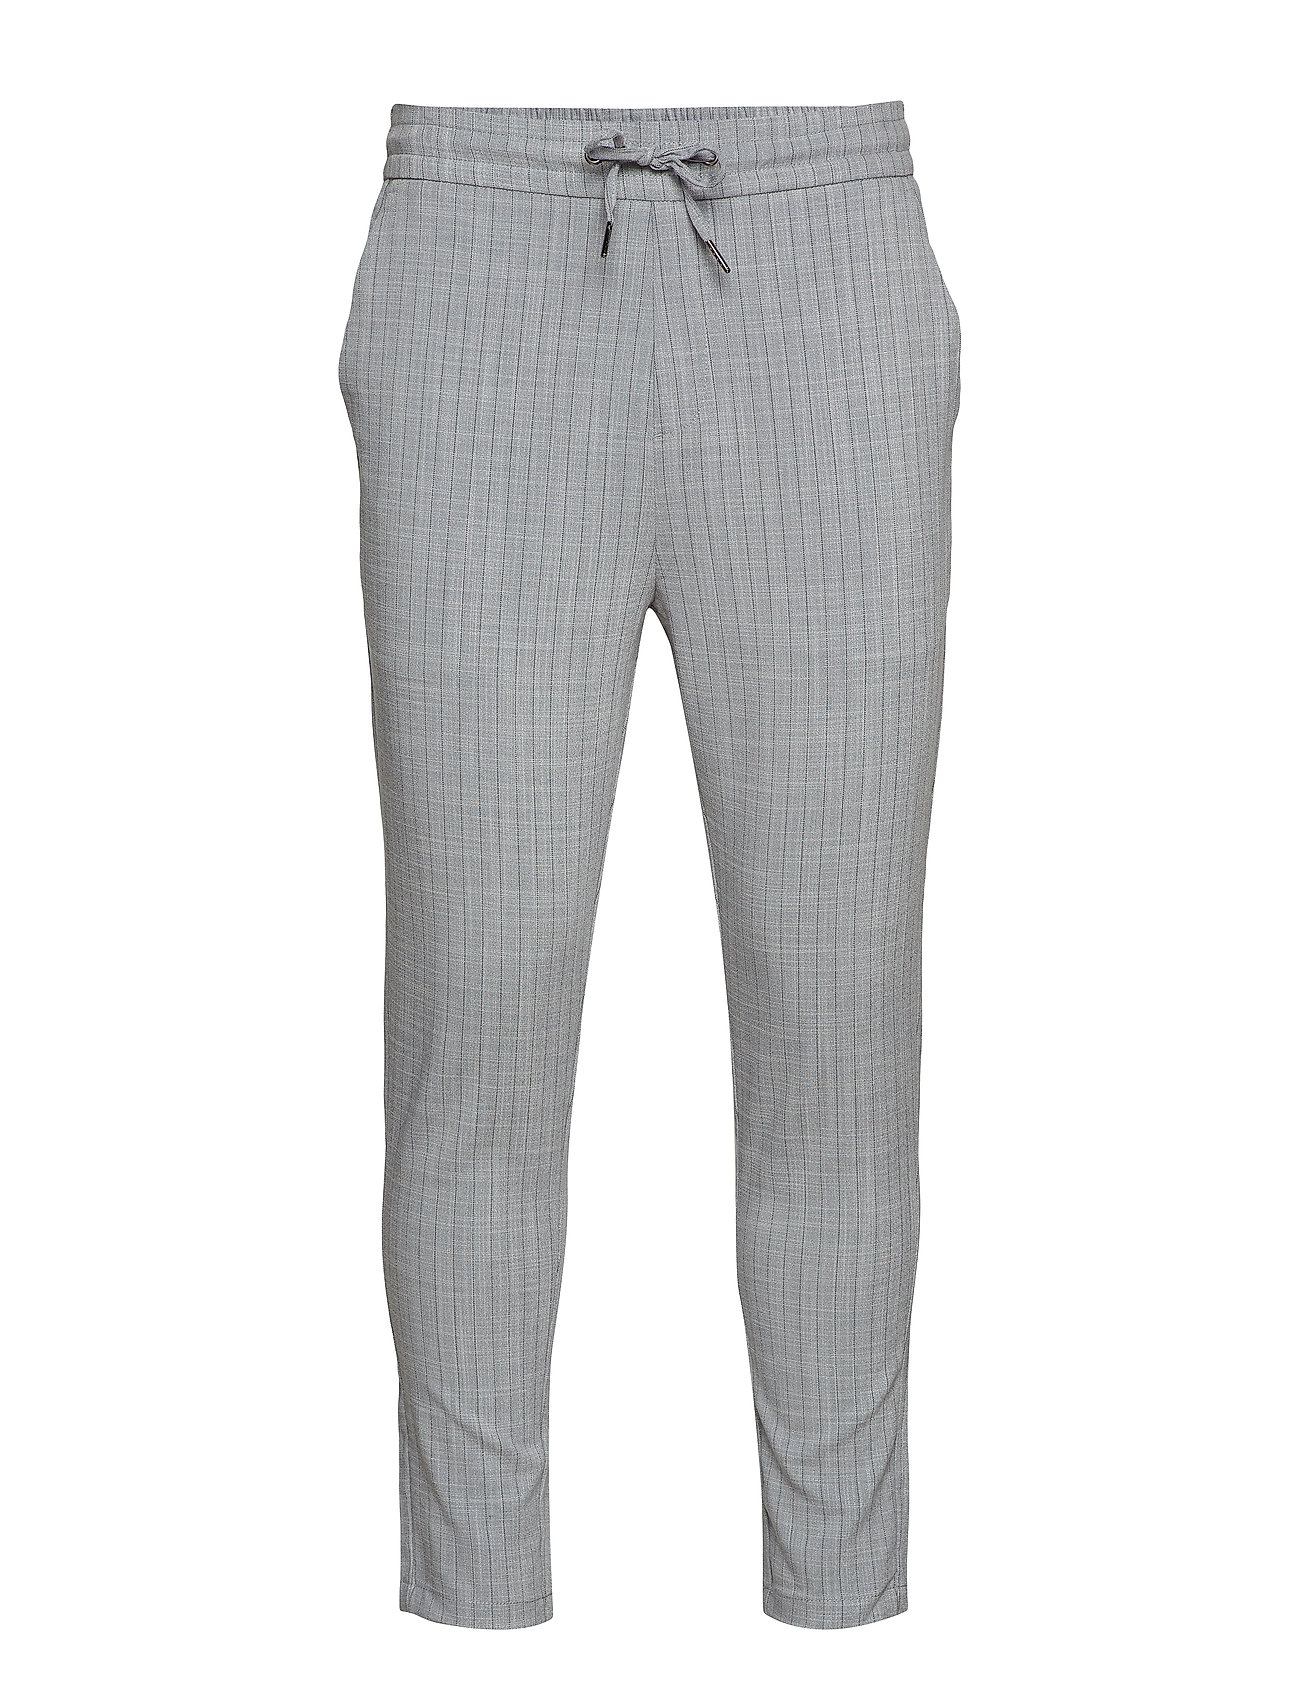 Main Stripe Pants - Just Junkies